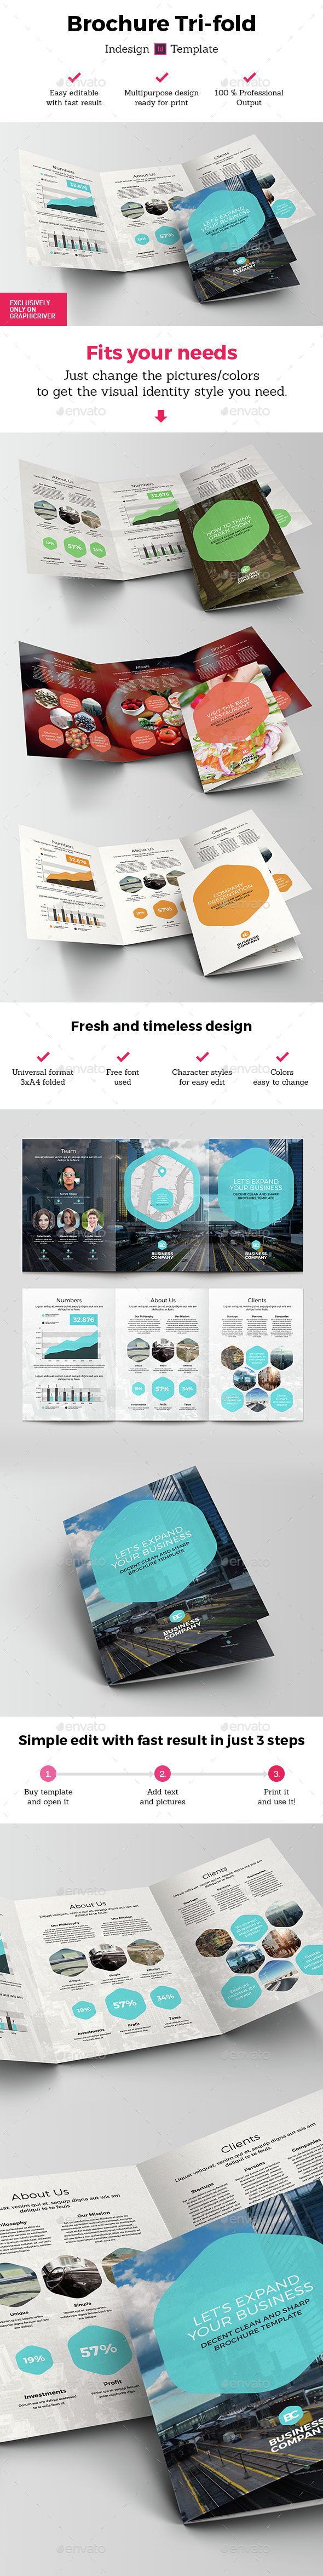 Polygon Brochure 3xA4 Tri-fold Indesign Template - Brochures Print Templates